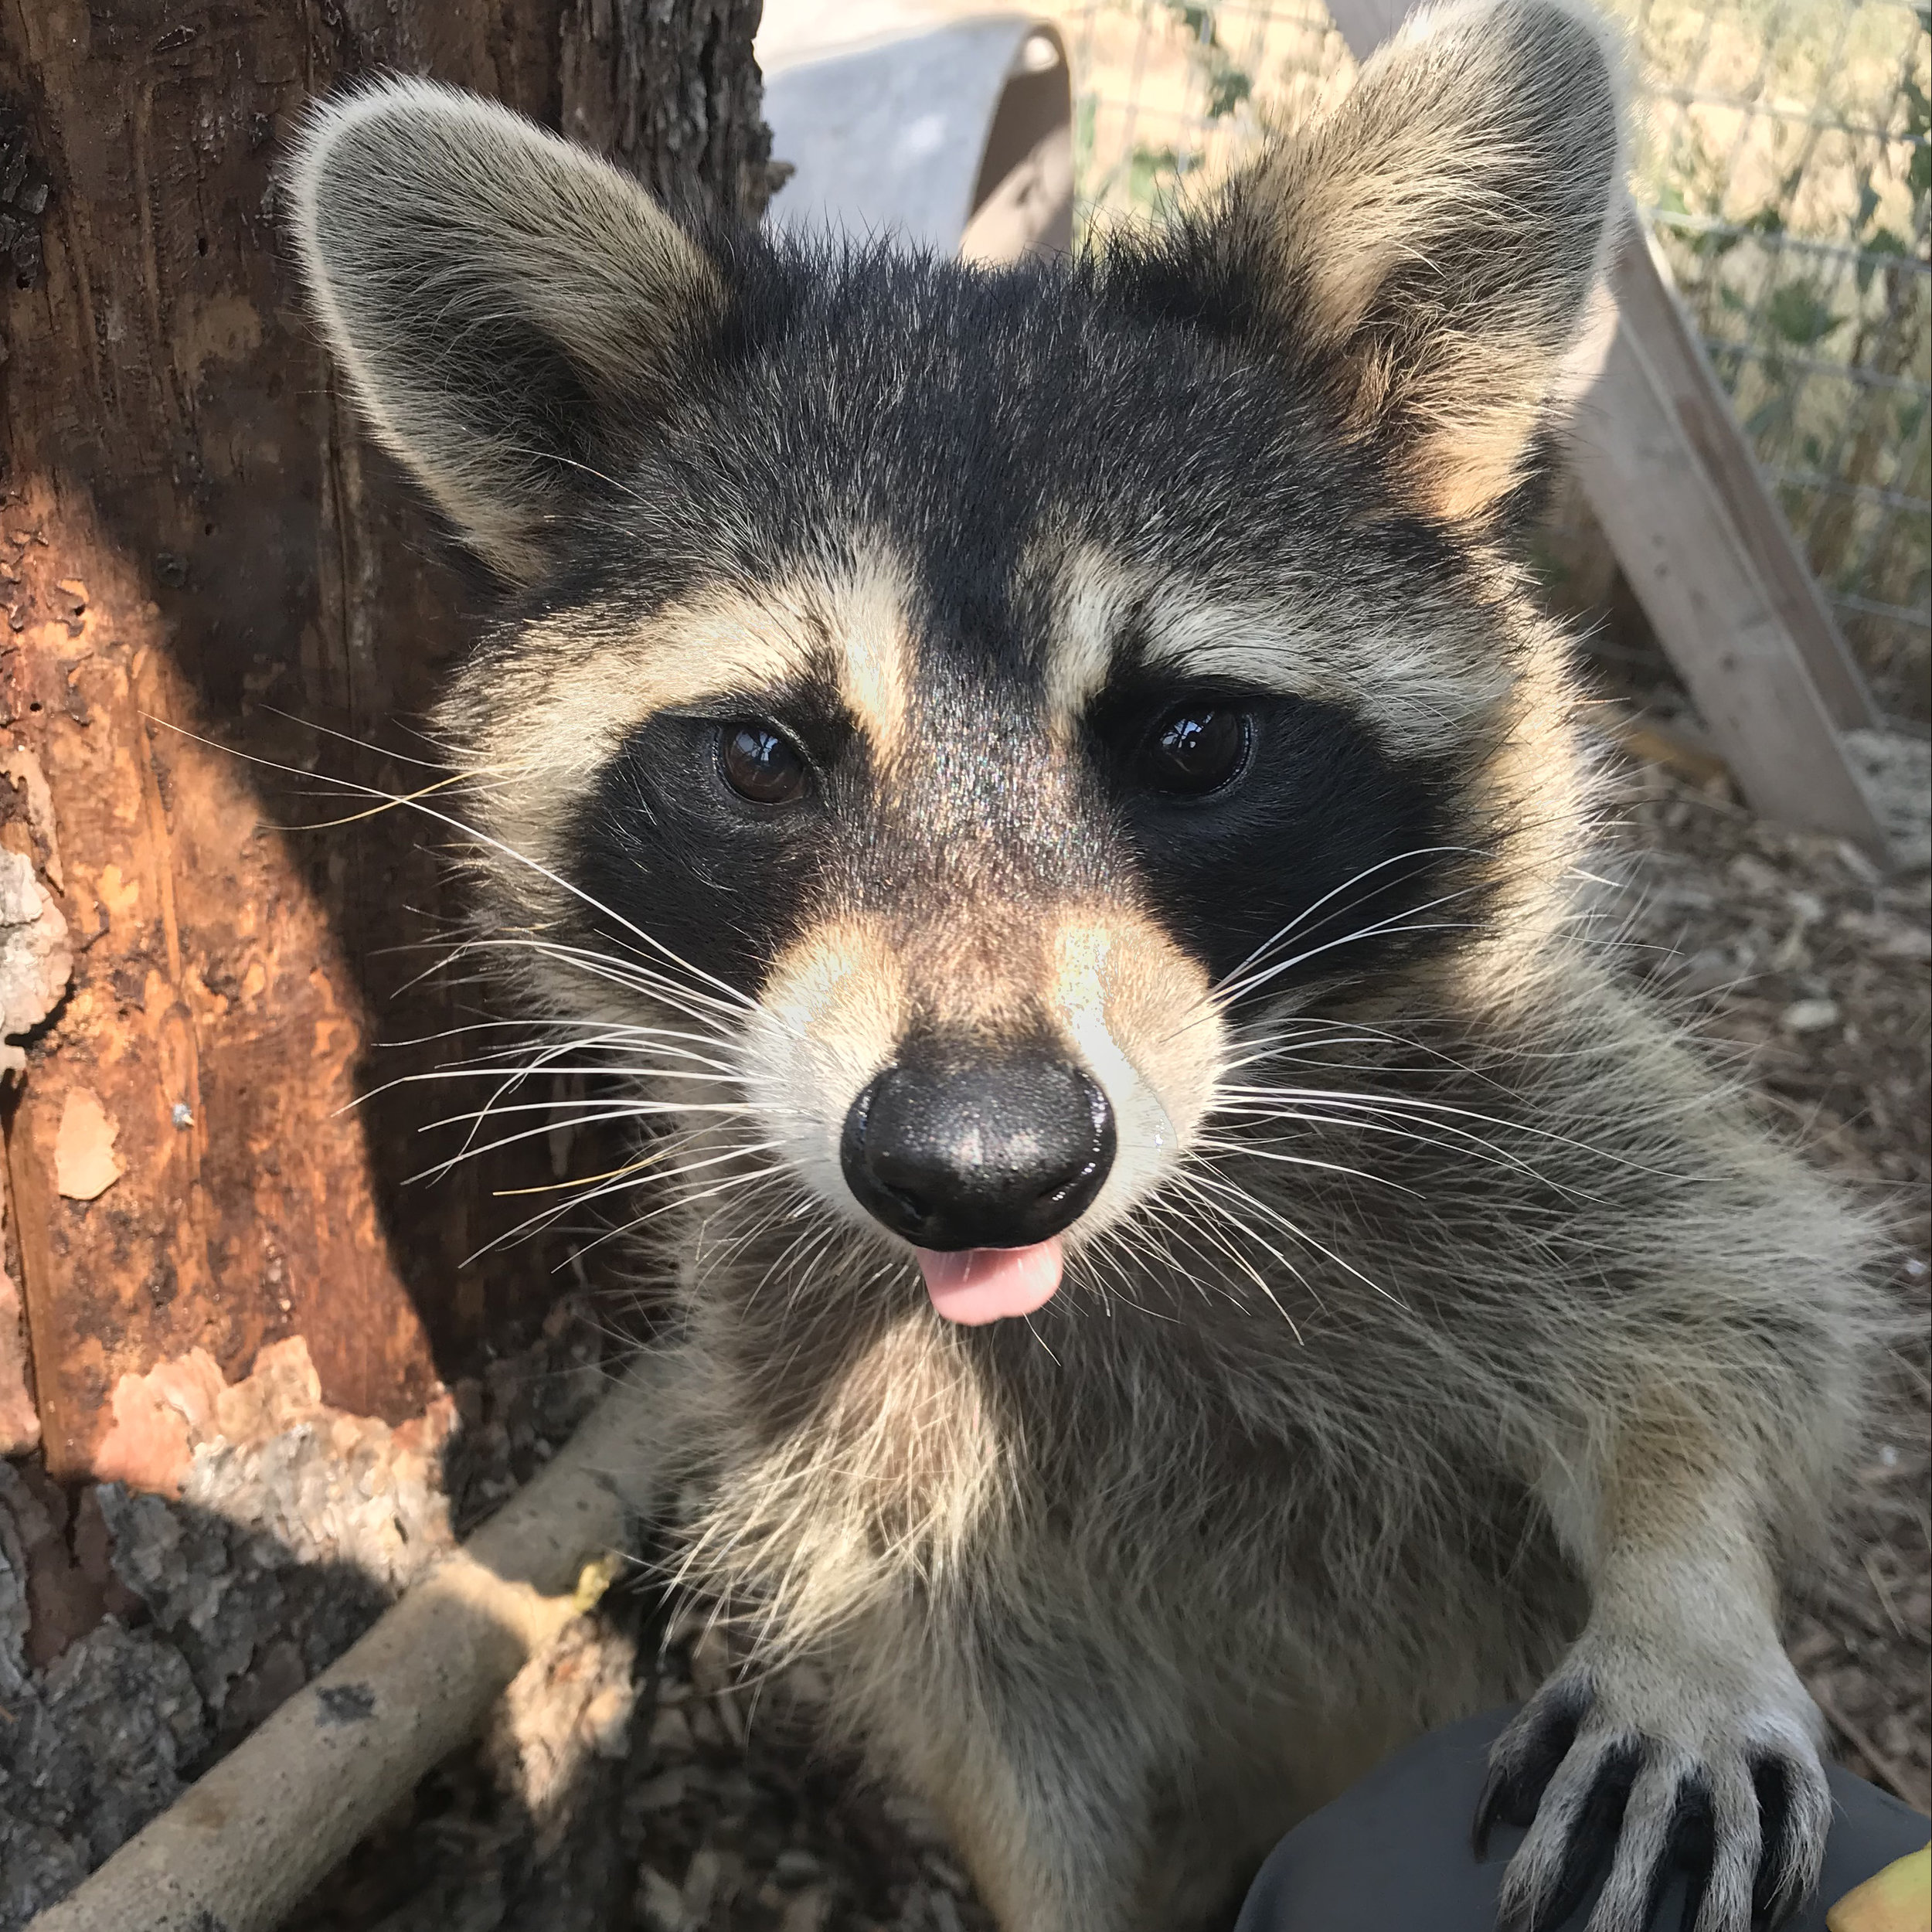 COOPER  is one of our newest animals. He was raised as a pet and is far too habituated to be released into the wild. Despite being cute and sometimes cuddly, raccoons generally make bad pets. They can be destructive, and their moods can change quickly.